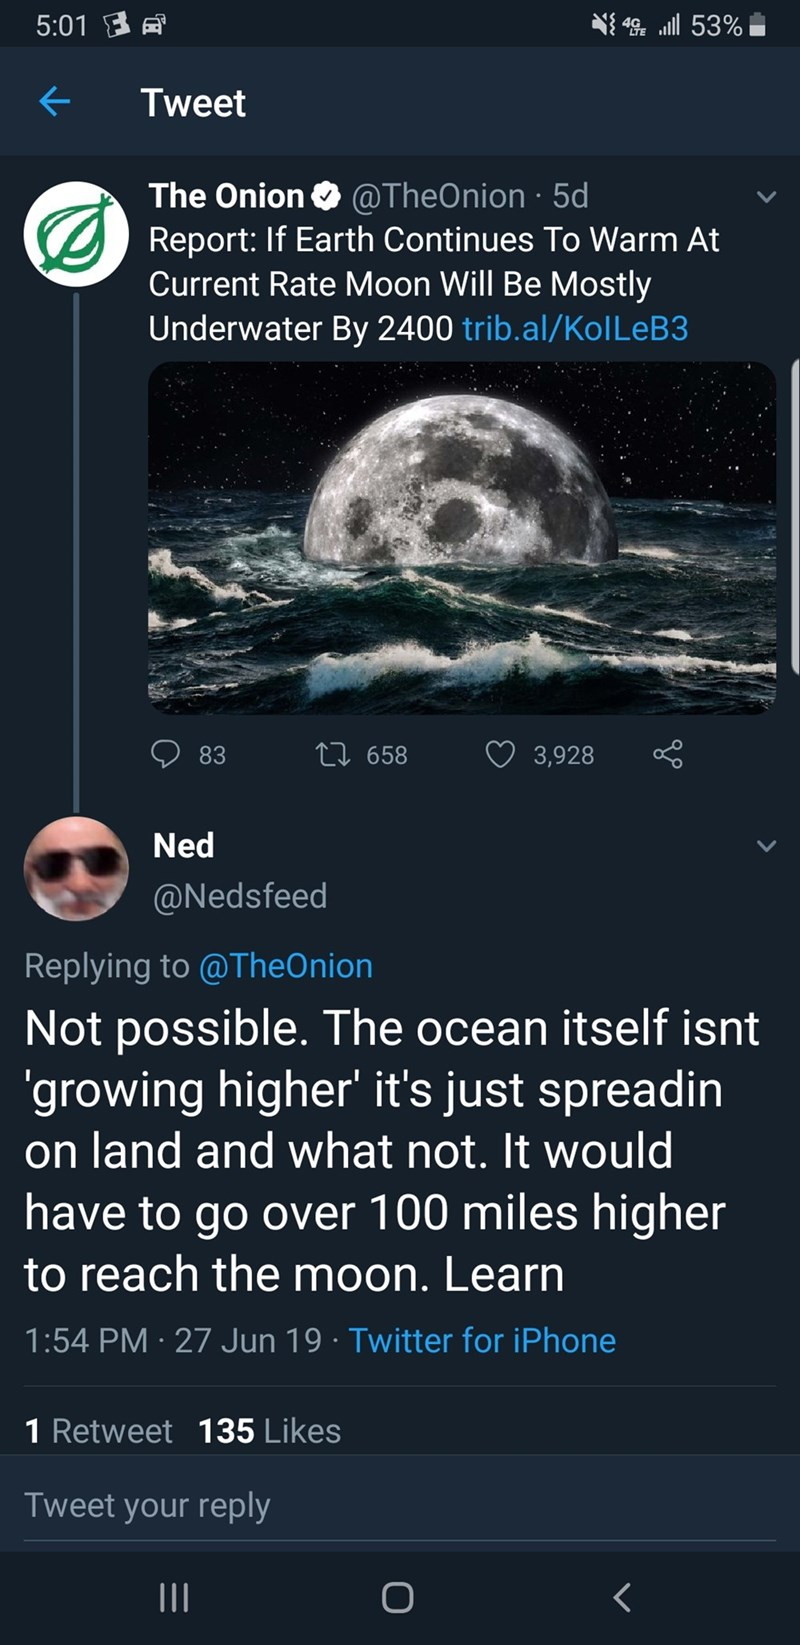 Text - 5:01 司 4 53% Tweet The Onion @TheOnion 5d Report: If Earth Continues To Warm At Current Rate Moon Will Be Mostly Underwater By 2400 trib.al/Kol LEB3 LI658 83 3,928 Ned @Nedsfeed Replying to @TheOnion Not possible. The ocean itself isnt 'growing higher' it's just spreadin on land and what not. It would have to go over 100 miles higher to reach the moon. Learn 1:54 PM 27 Jun 19 Twitter for iPhone 1 Retweet 135 Likes Tweet your reply II